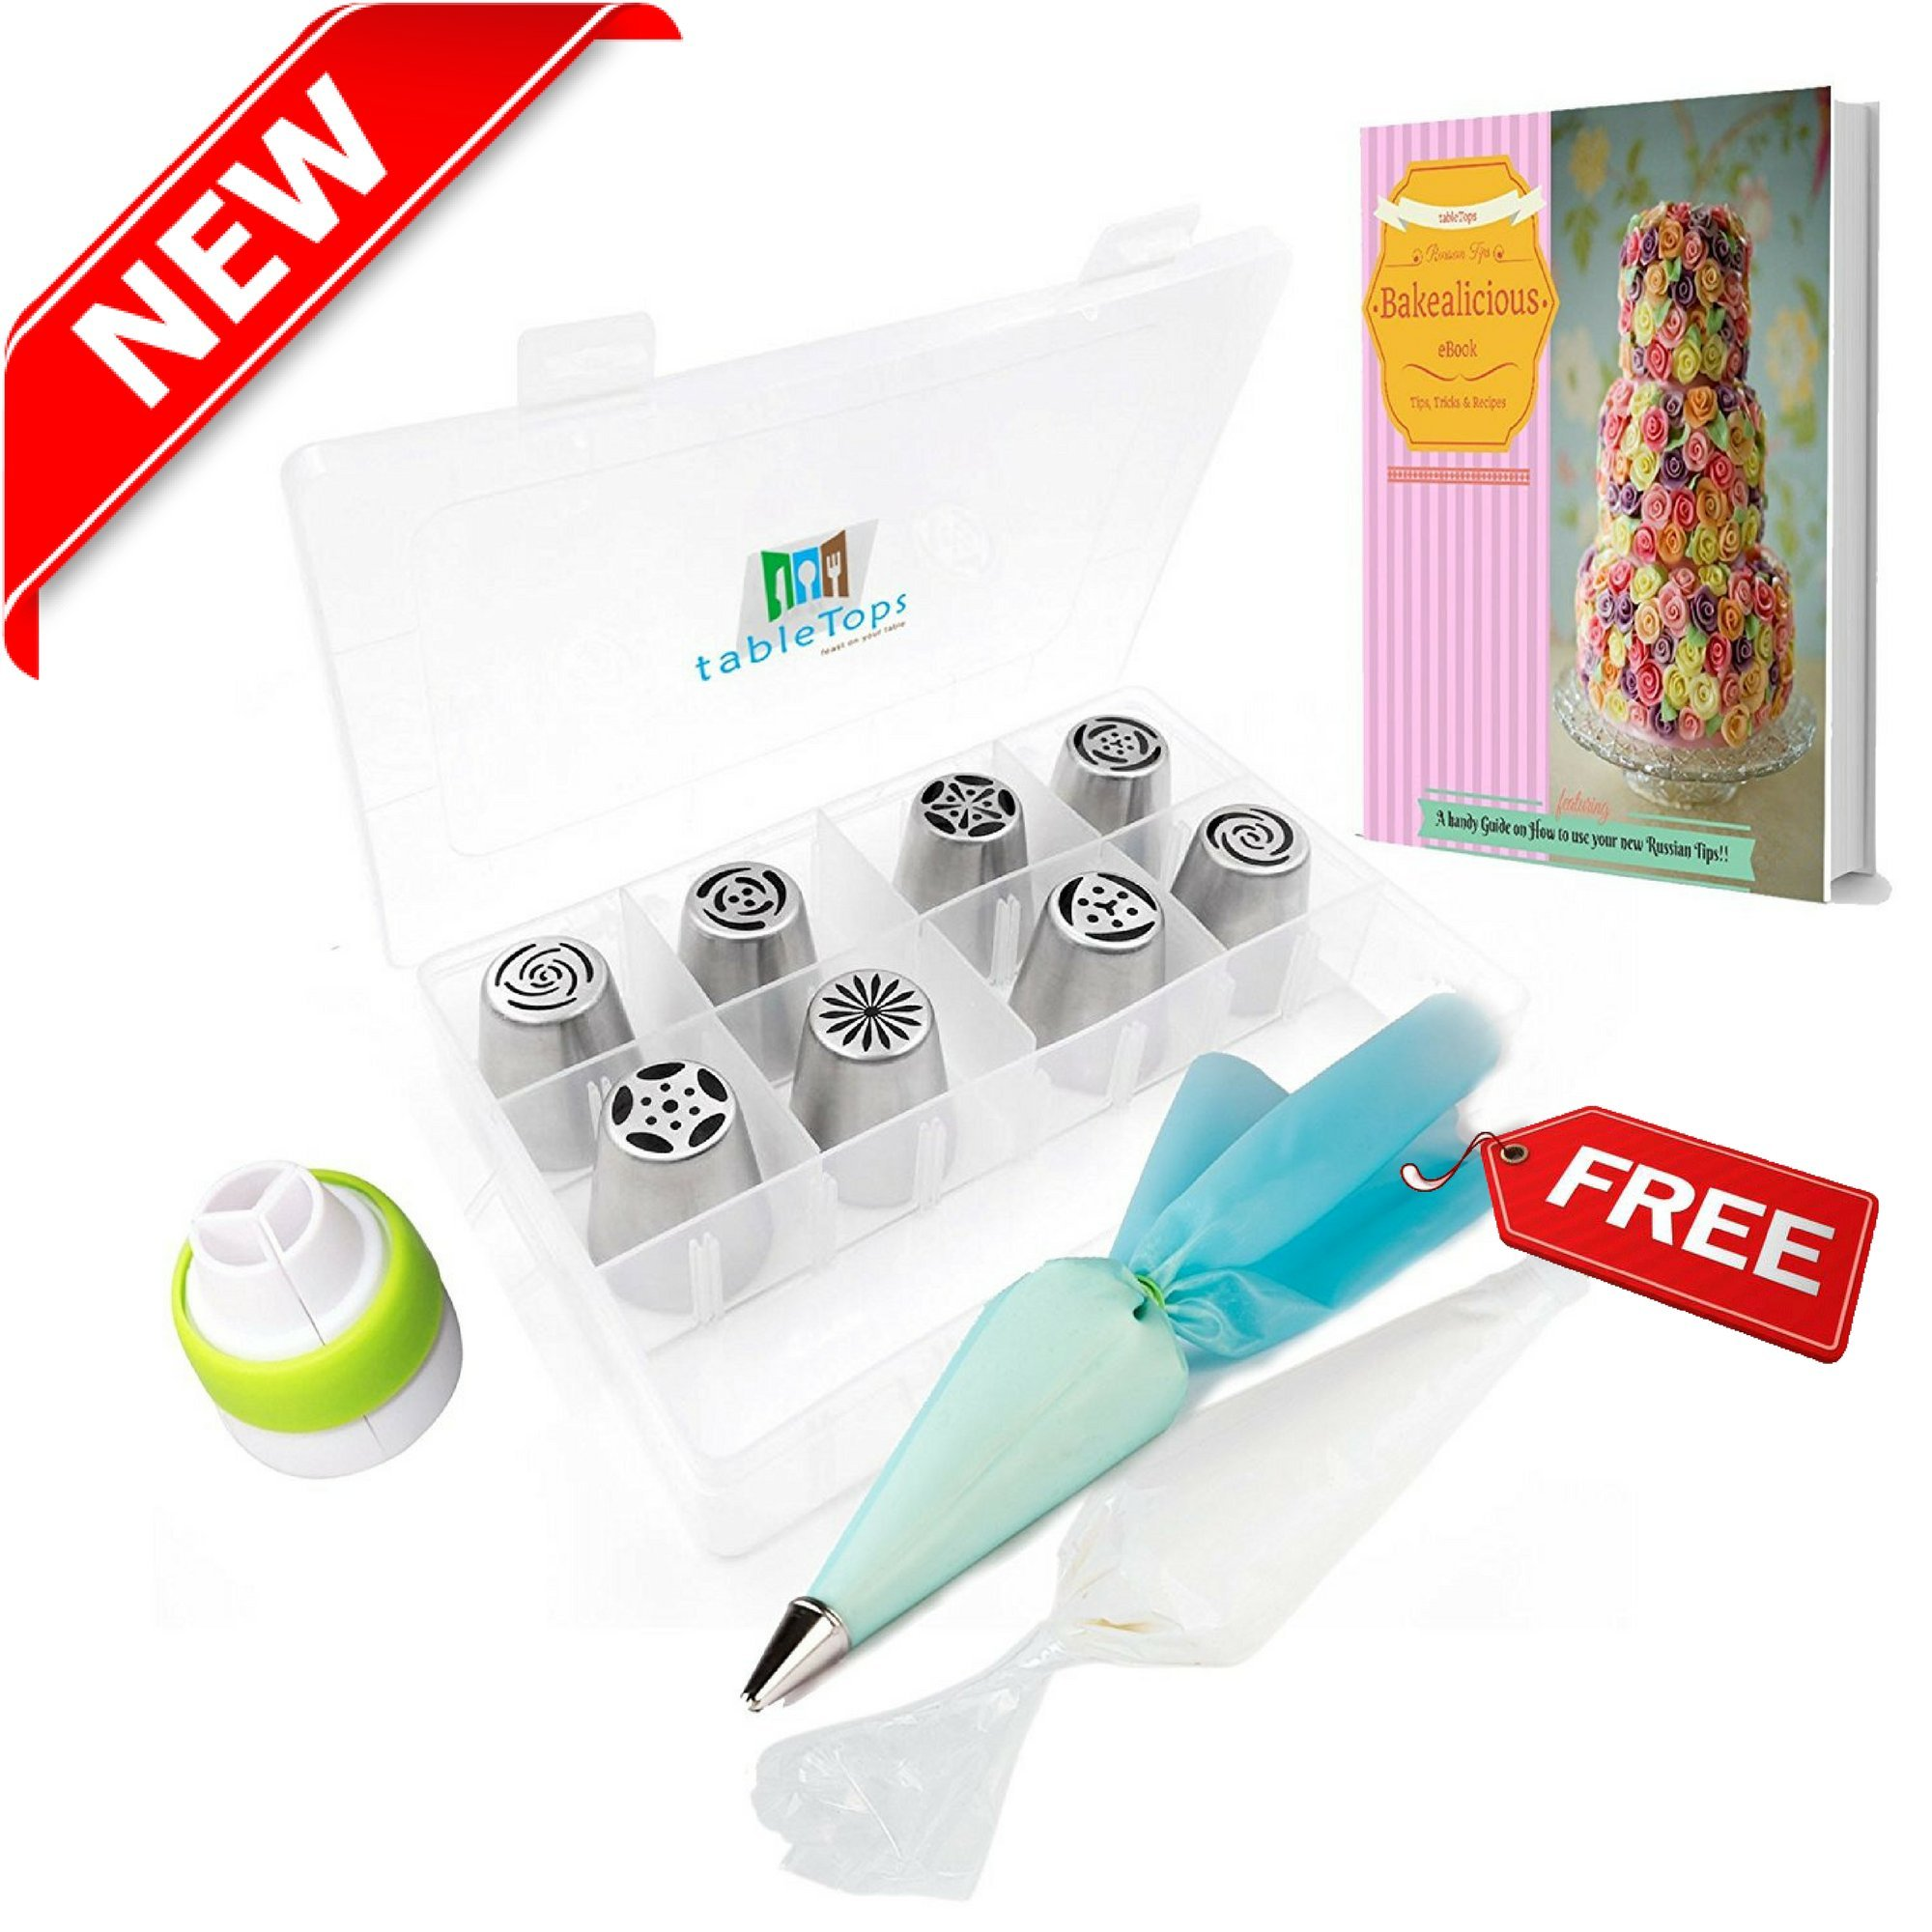 LIMITED TIME OFFER-Icing Russian piping tips nozzles for cupcakes & decorating tips-BONUS x11 Decorating Bags and tips set and Coupler-Baking tips flowers for Cake Decoration Kit Set! (21 pieces)